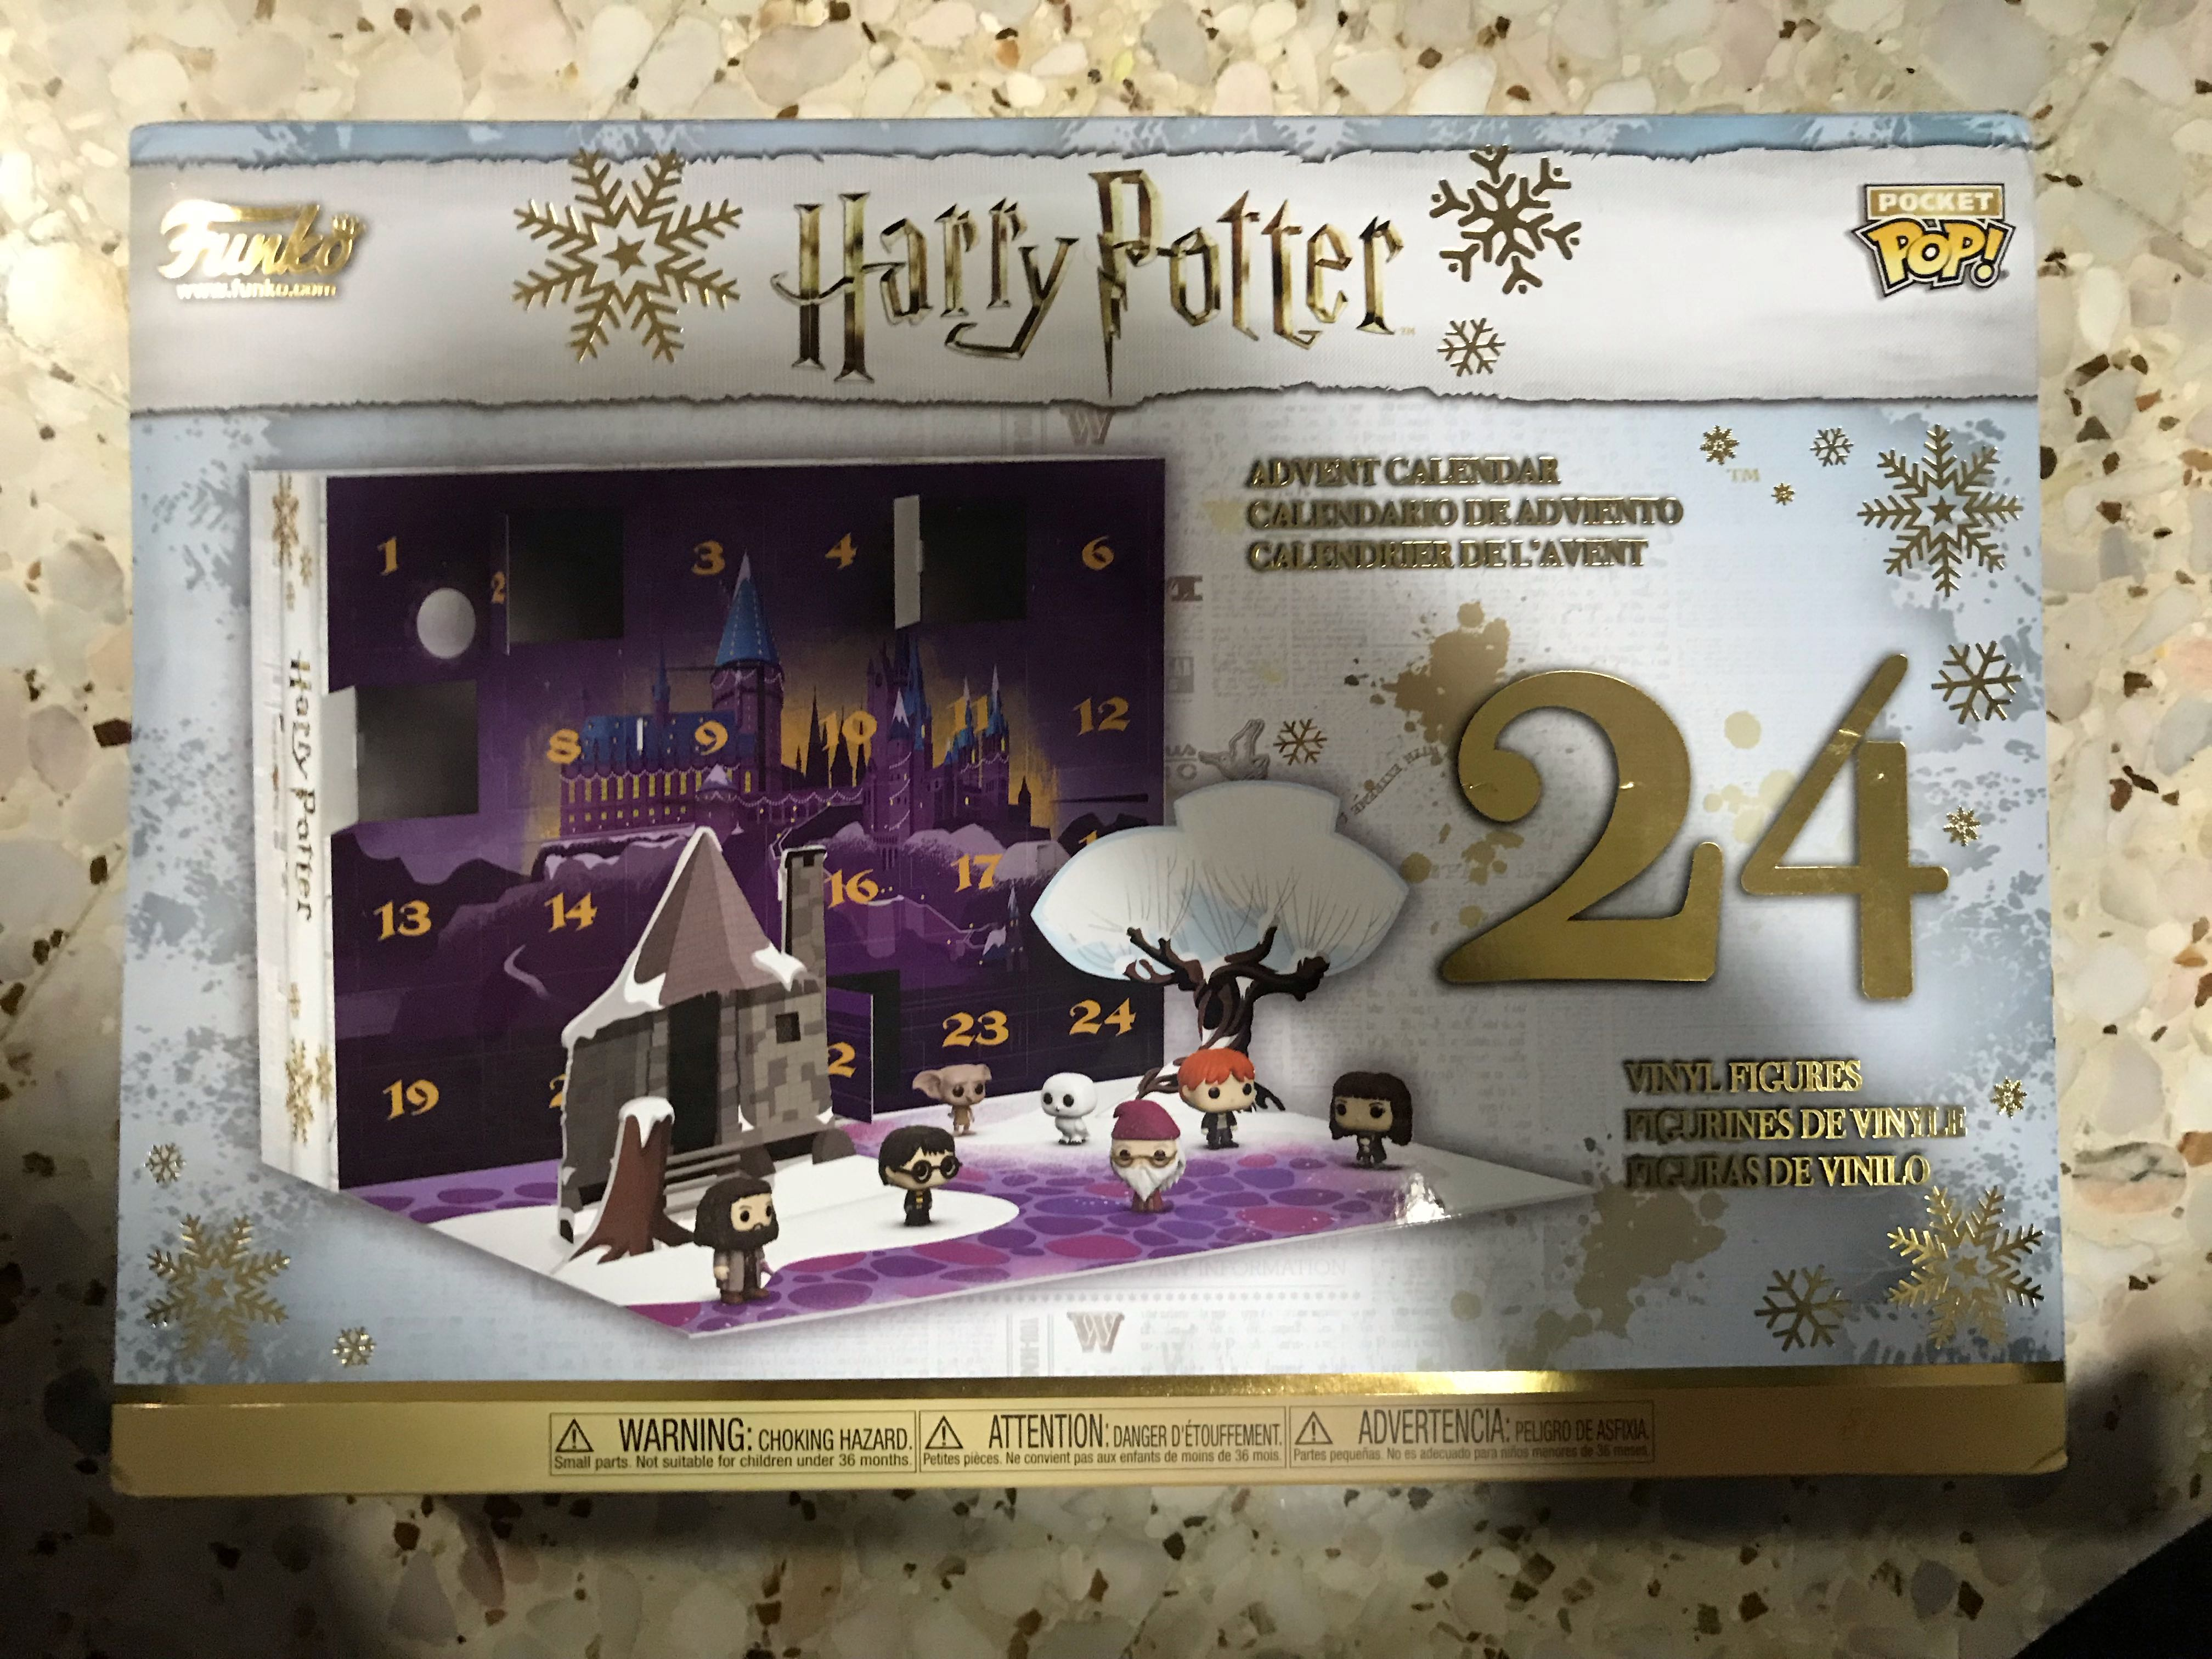 Calendrier De Lavent Harry Potter Funko Pop.Funko Pop Harry Potter Advent Toys Games Others On Carousell